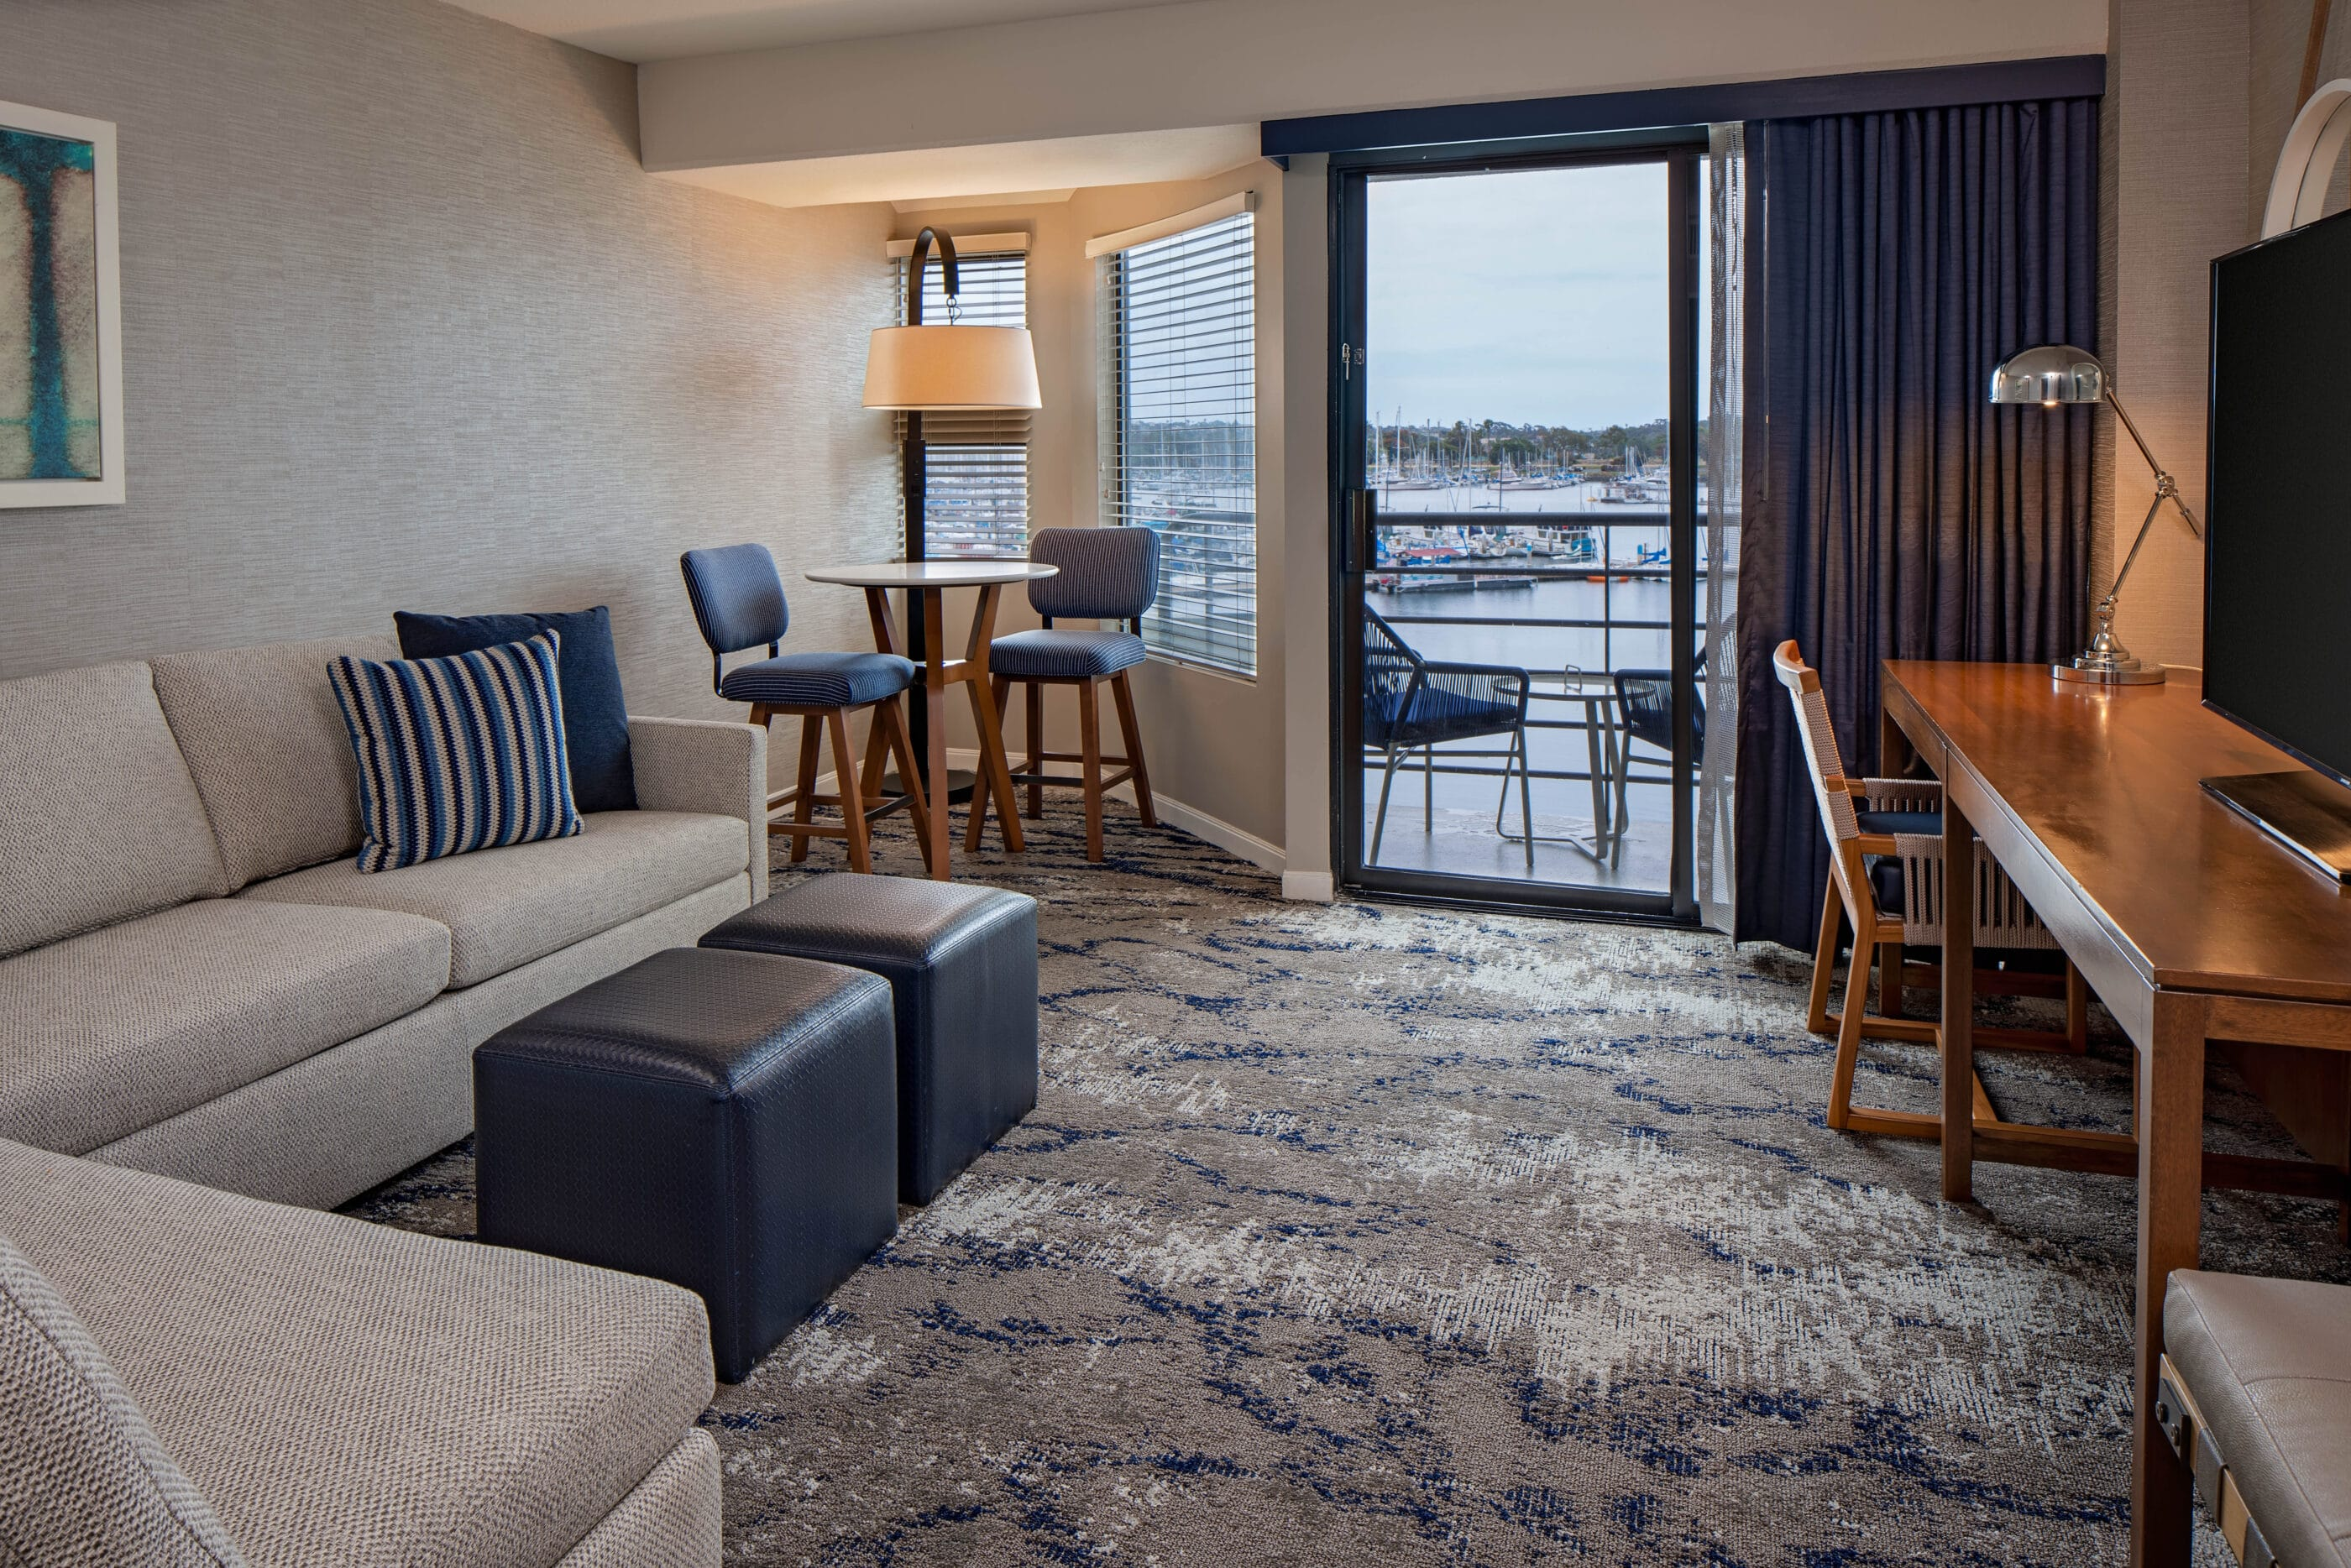 Marina Family Suite living room interior overlooking the marina on the bay.